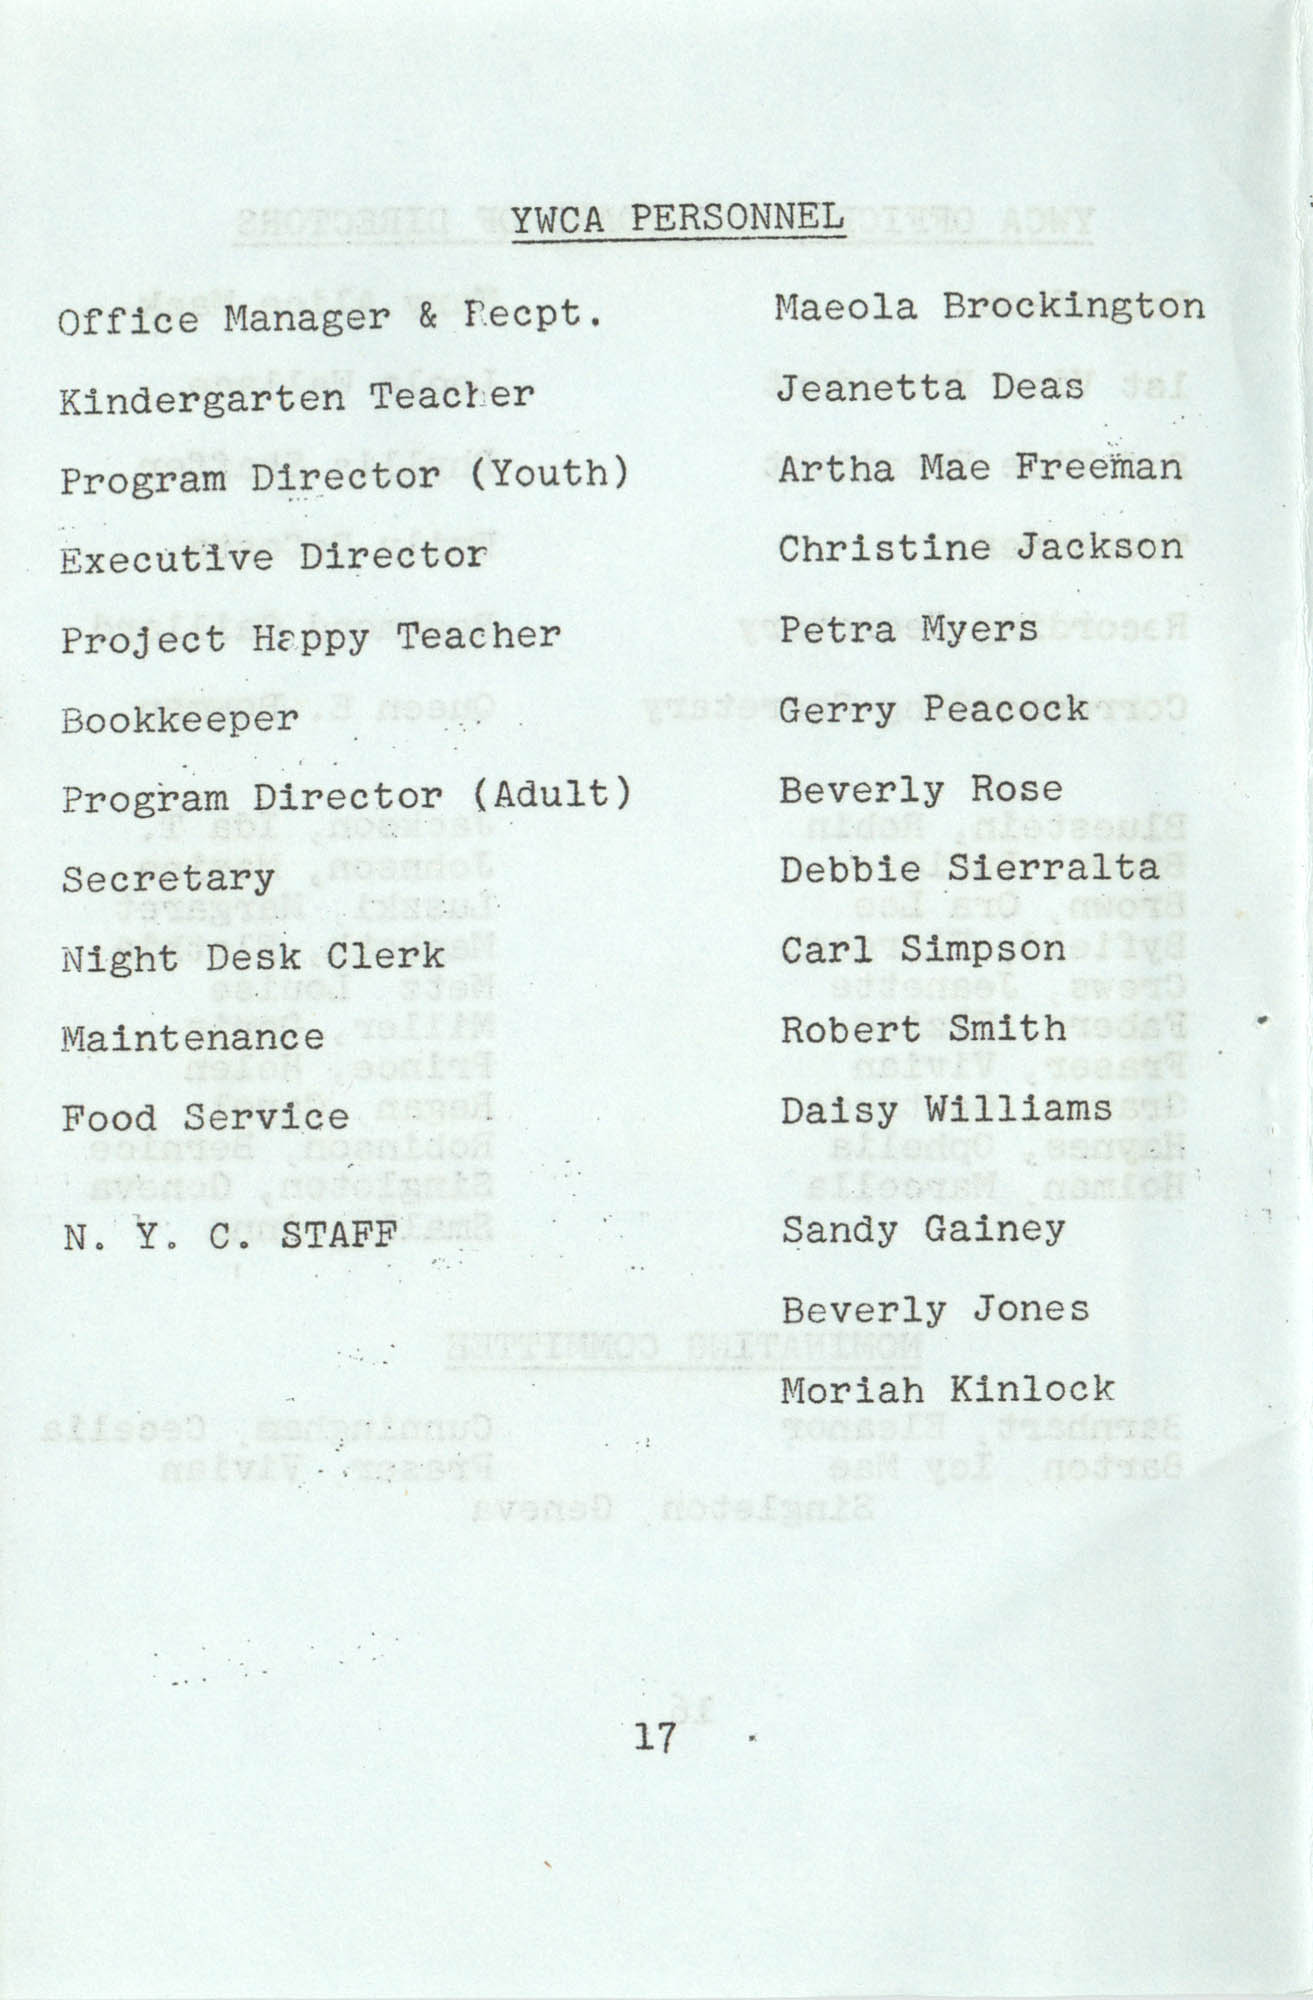 Spring 1975 Schedule, Y.W.C.A. of Greater Charleston, Page 17